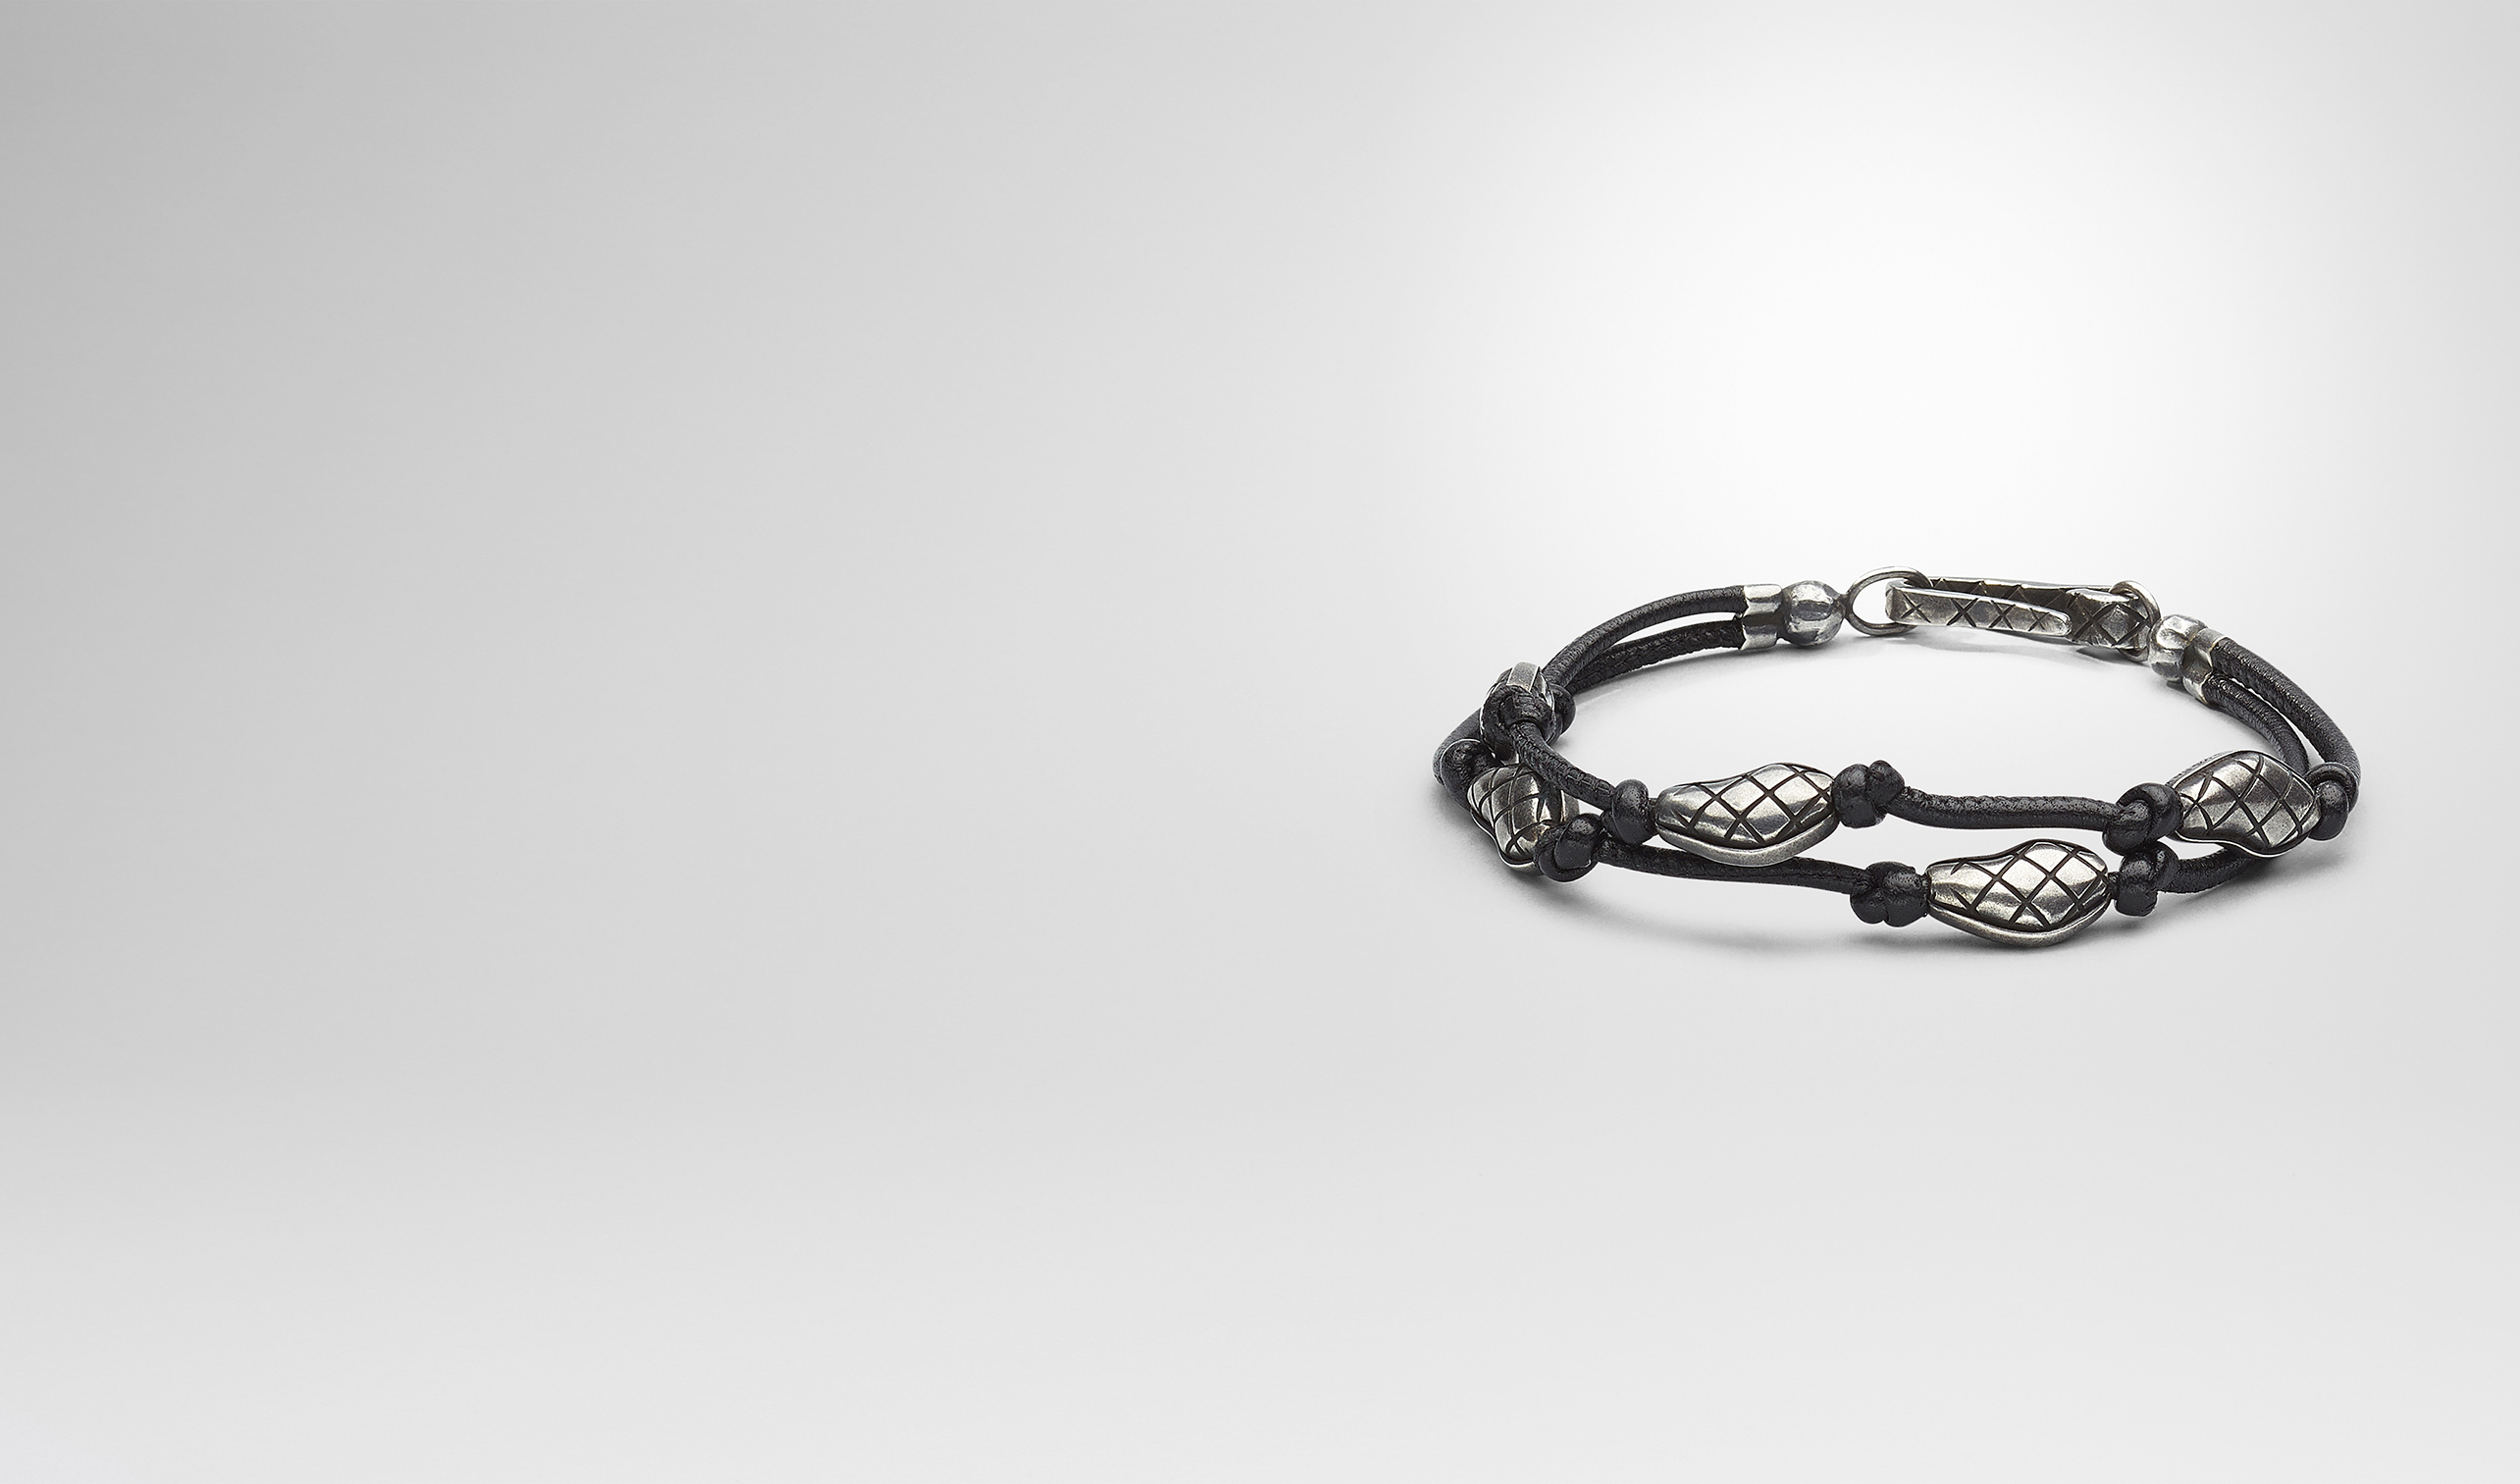 BOTTEGA VENETA Bracelet U BRACELET IN NERO NAPPA AND SILVER  pl